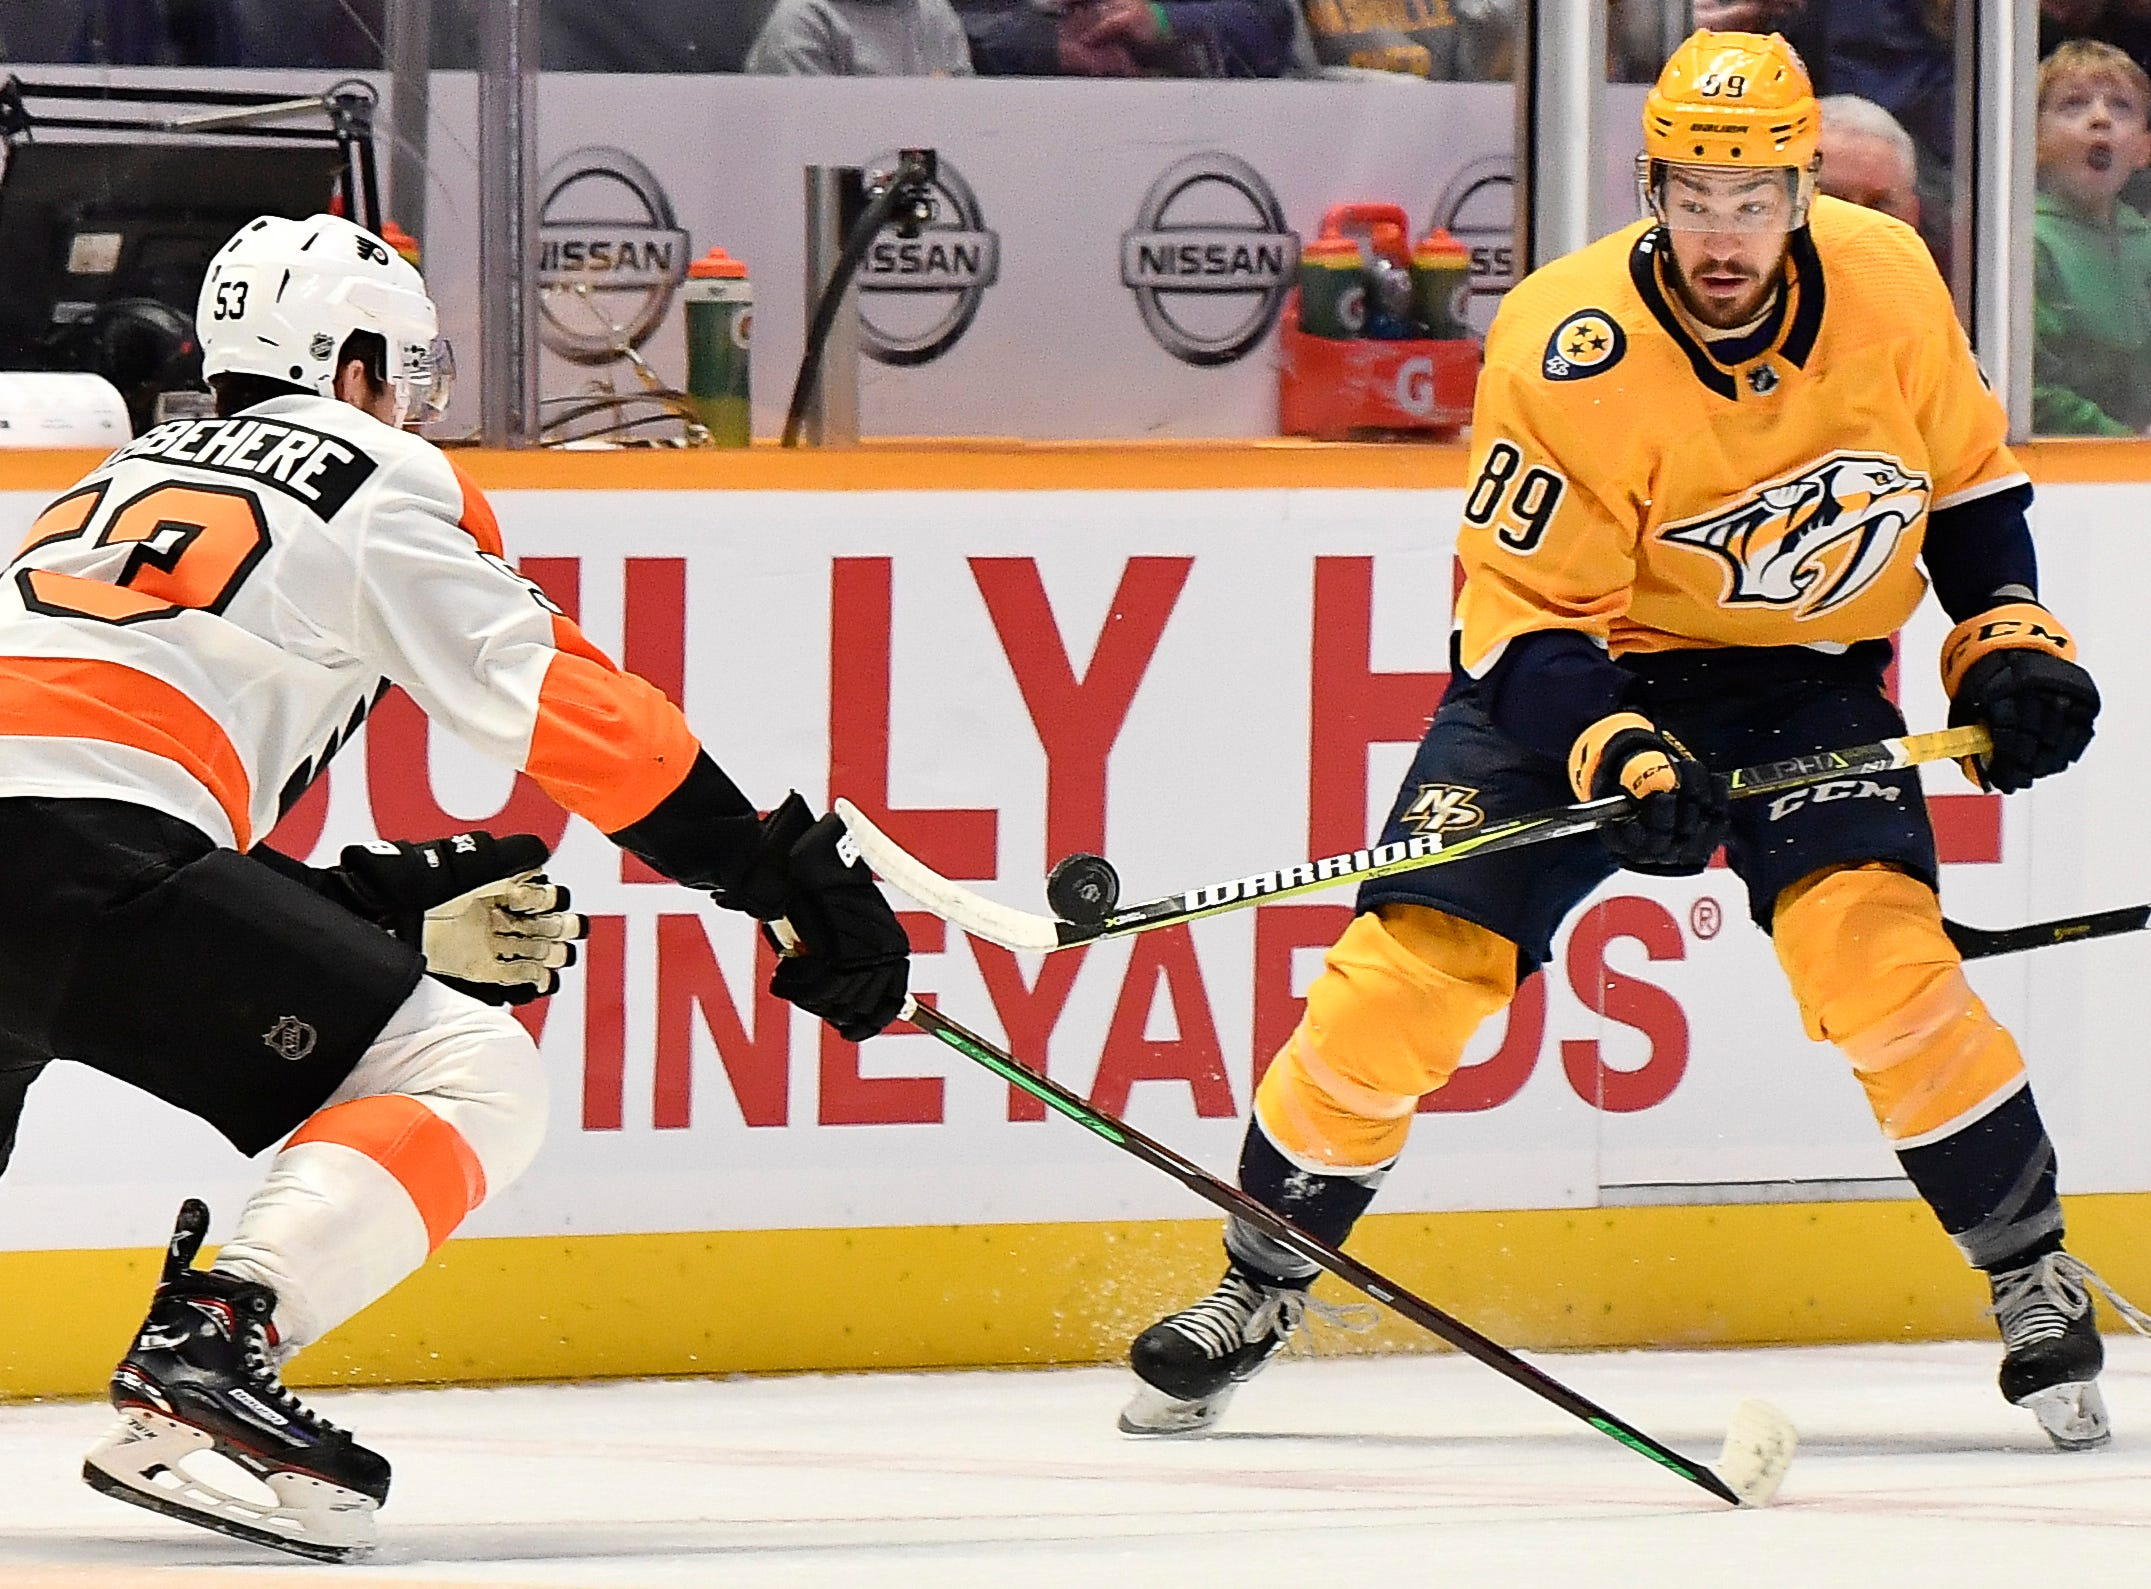 Predators center Frederick Gaudreau (89) takes the puck from Flyers defenseman Shayne Gostisbehere (53) during the first period at Bridgestone Arena Tuesday, Jan. 1, 2019, in Nashville, Tenn.